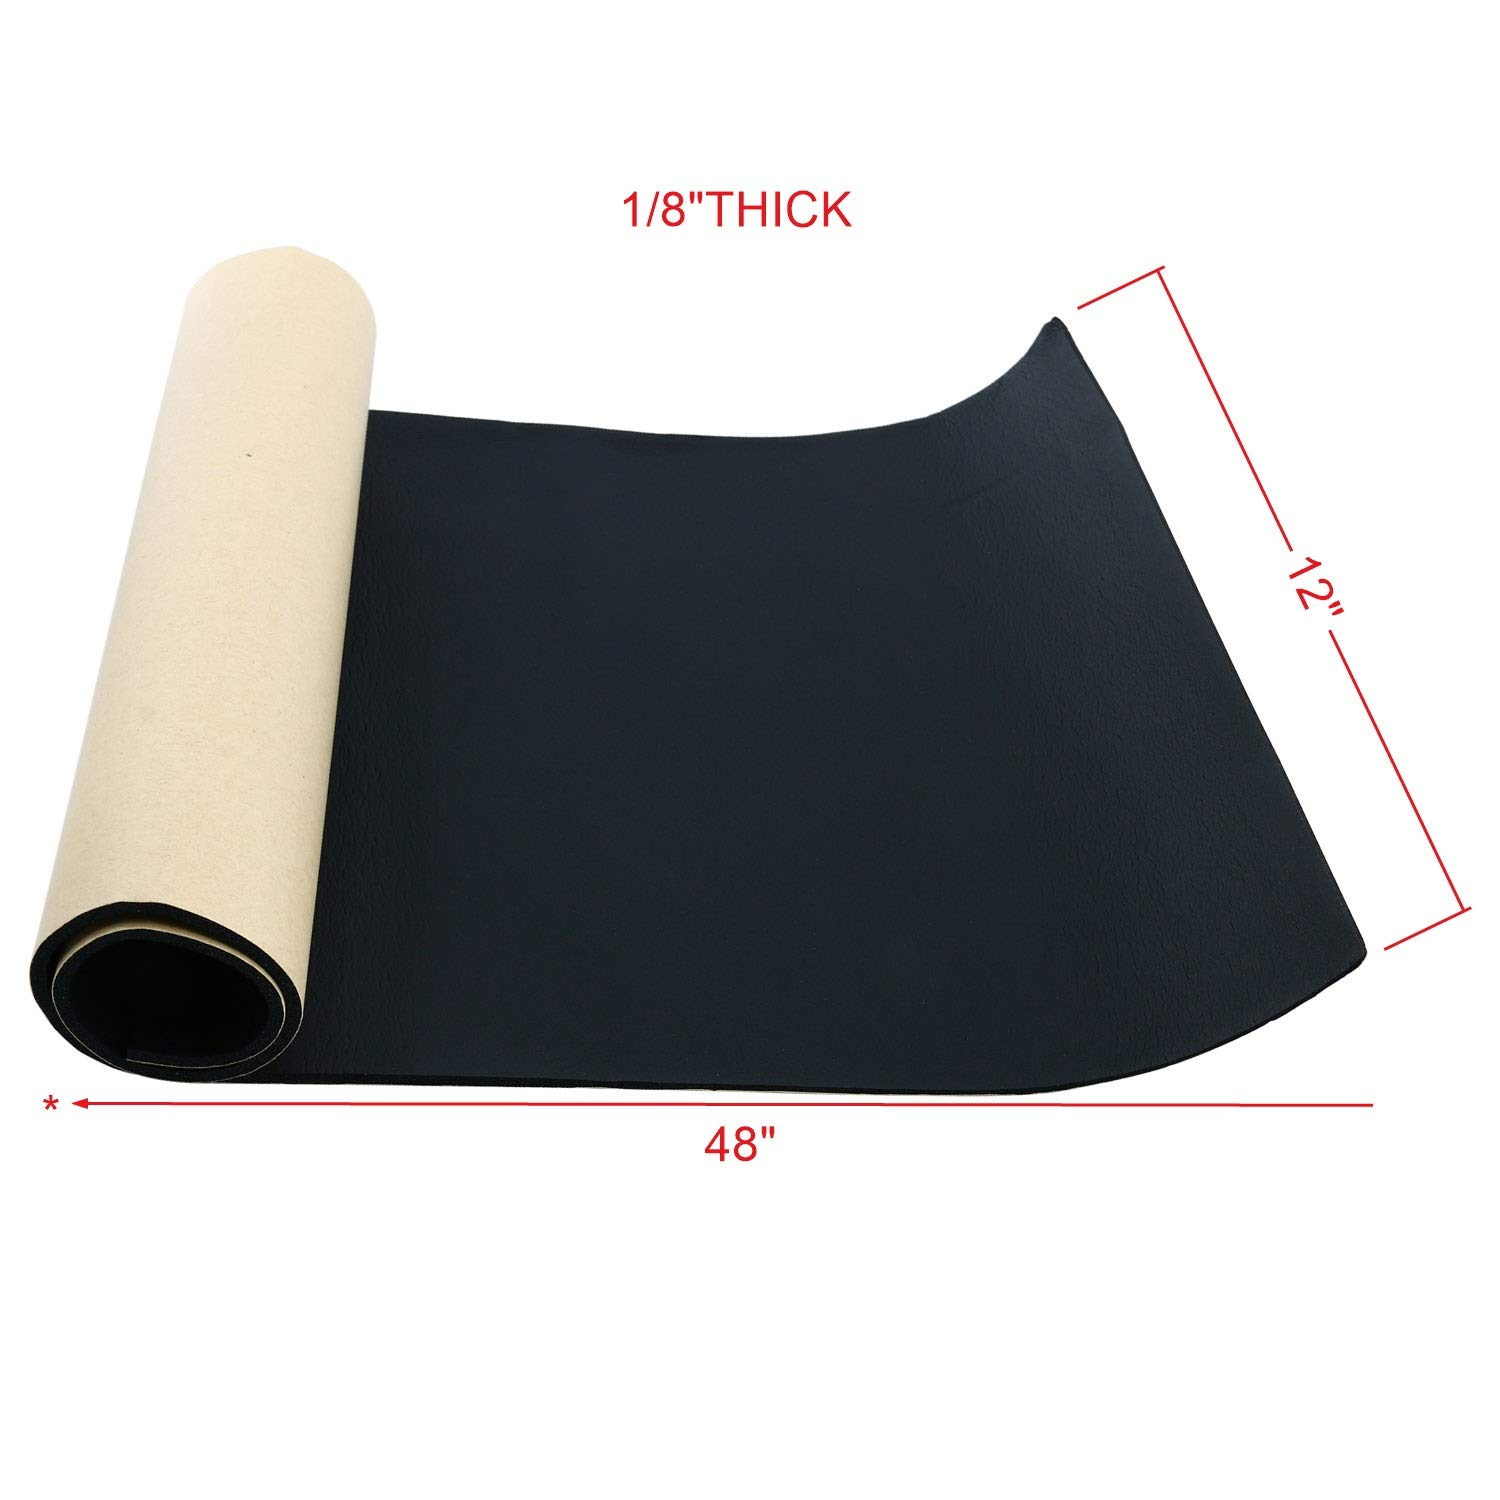 "Homend Sponge Neoprene with Adhesive Foam Rubber Sheet 1 8"" Thick X 12"" Wide X 48"" Long Cut to Multiple Dimensions and Lengths DIY Gaskets Cosplay Costume Crafts"